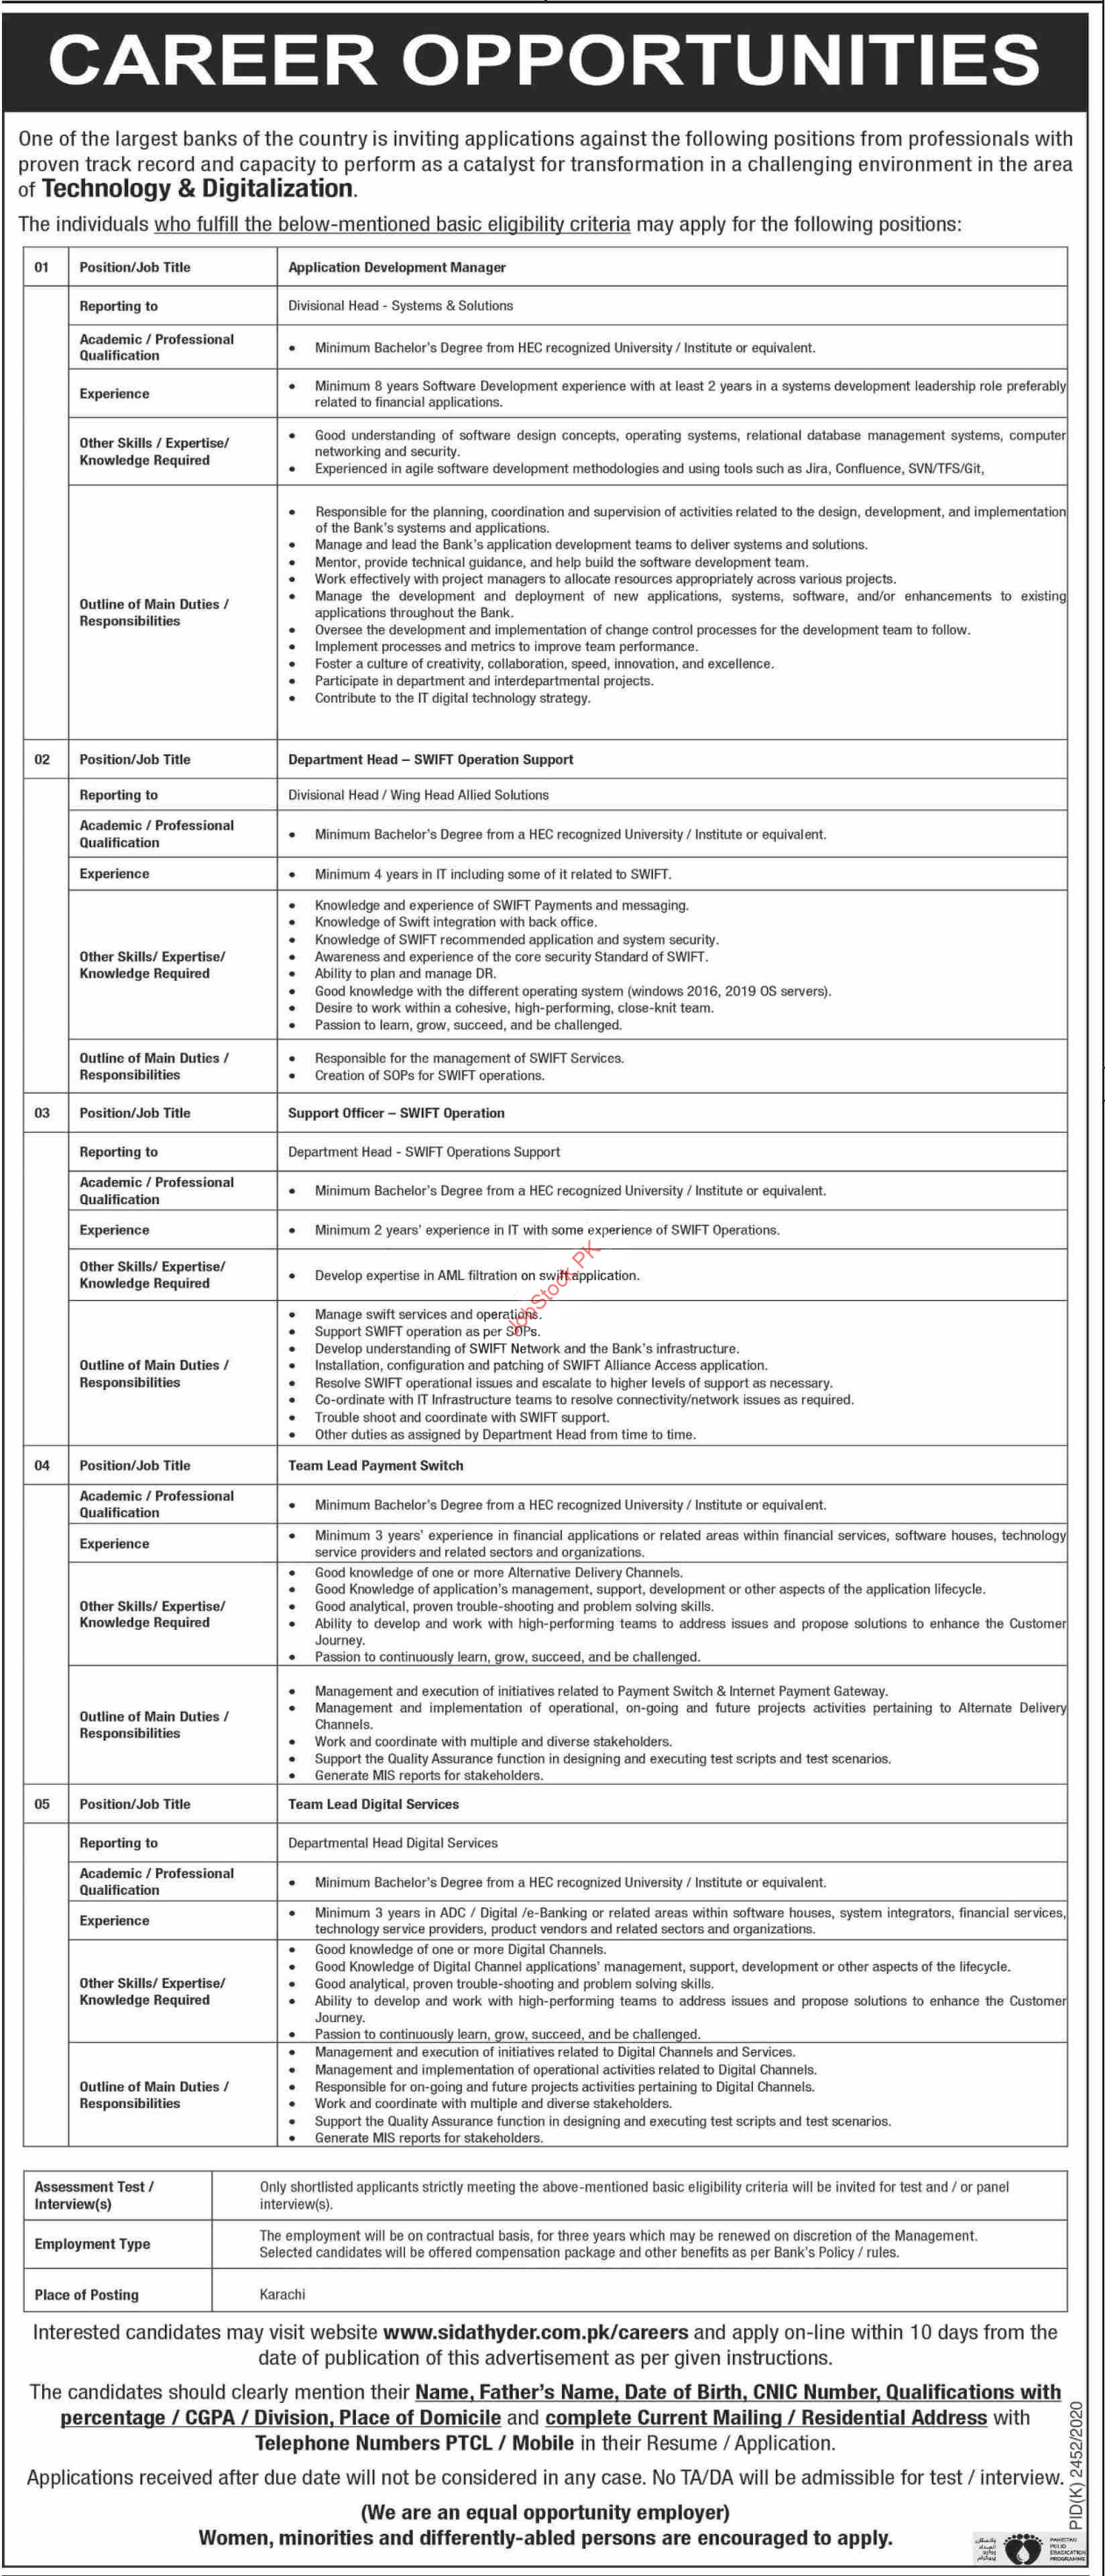 Sidat Hyder Morshed Associates Pvt Ltd Karachi Jobs 2021